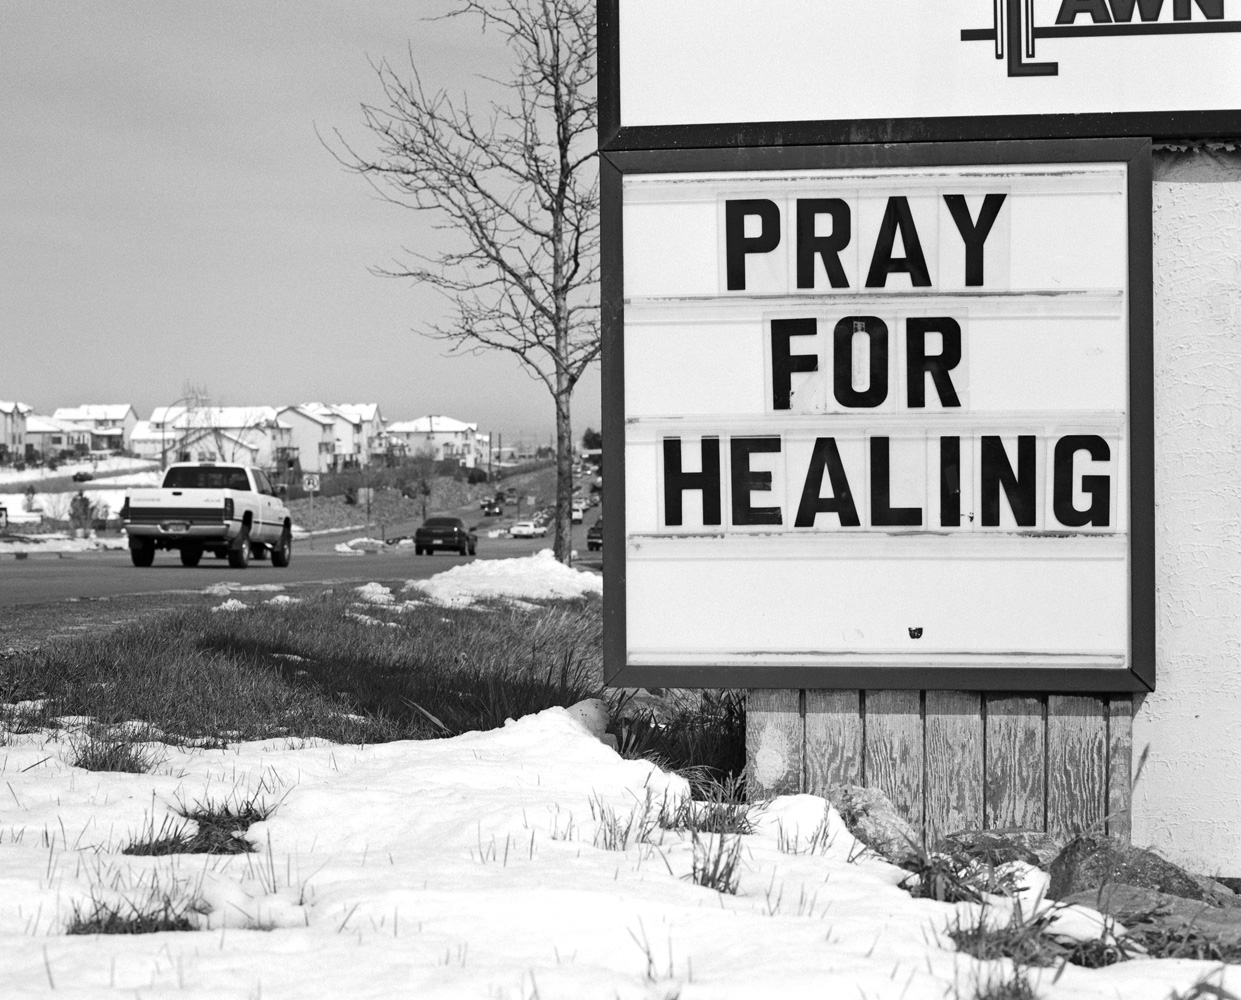 Local sign in Columbine, Colo. in response to the tragic Columbine High School shooting.